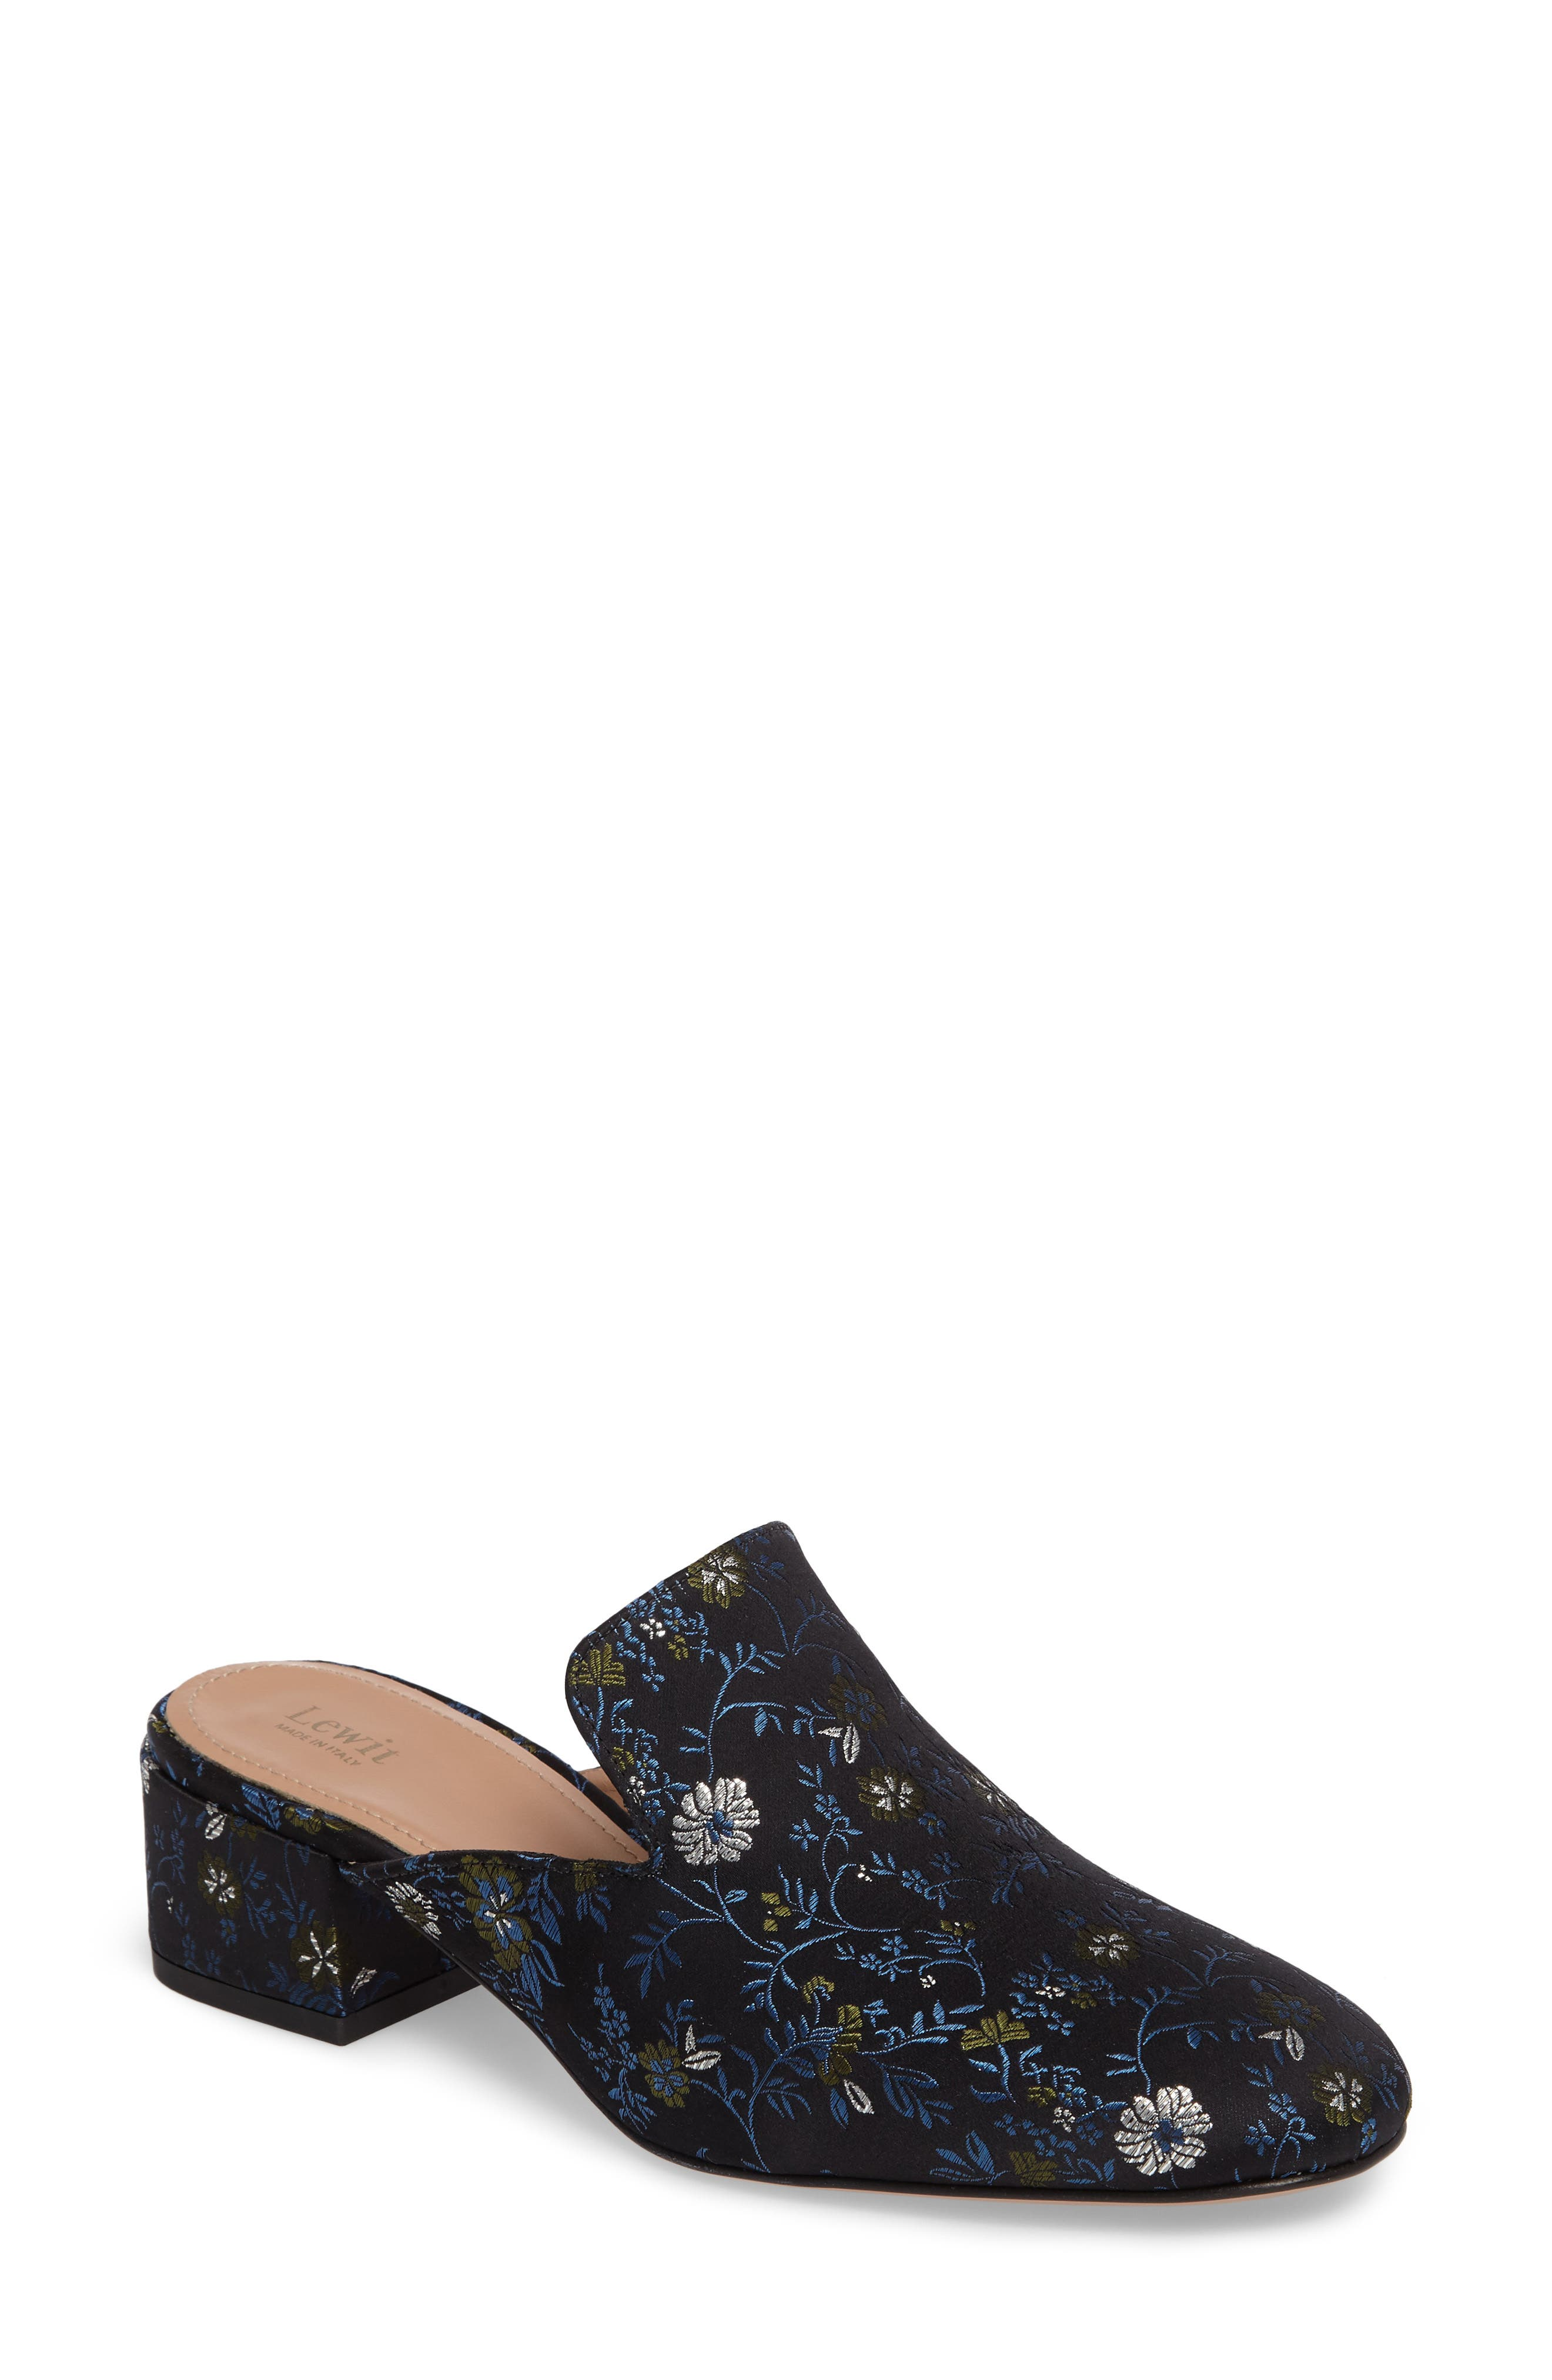 Main Image - Lewit Bianca Embroidered Loafer Mule (Women)